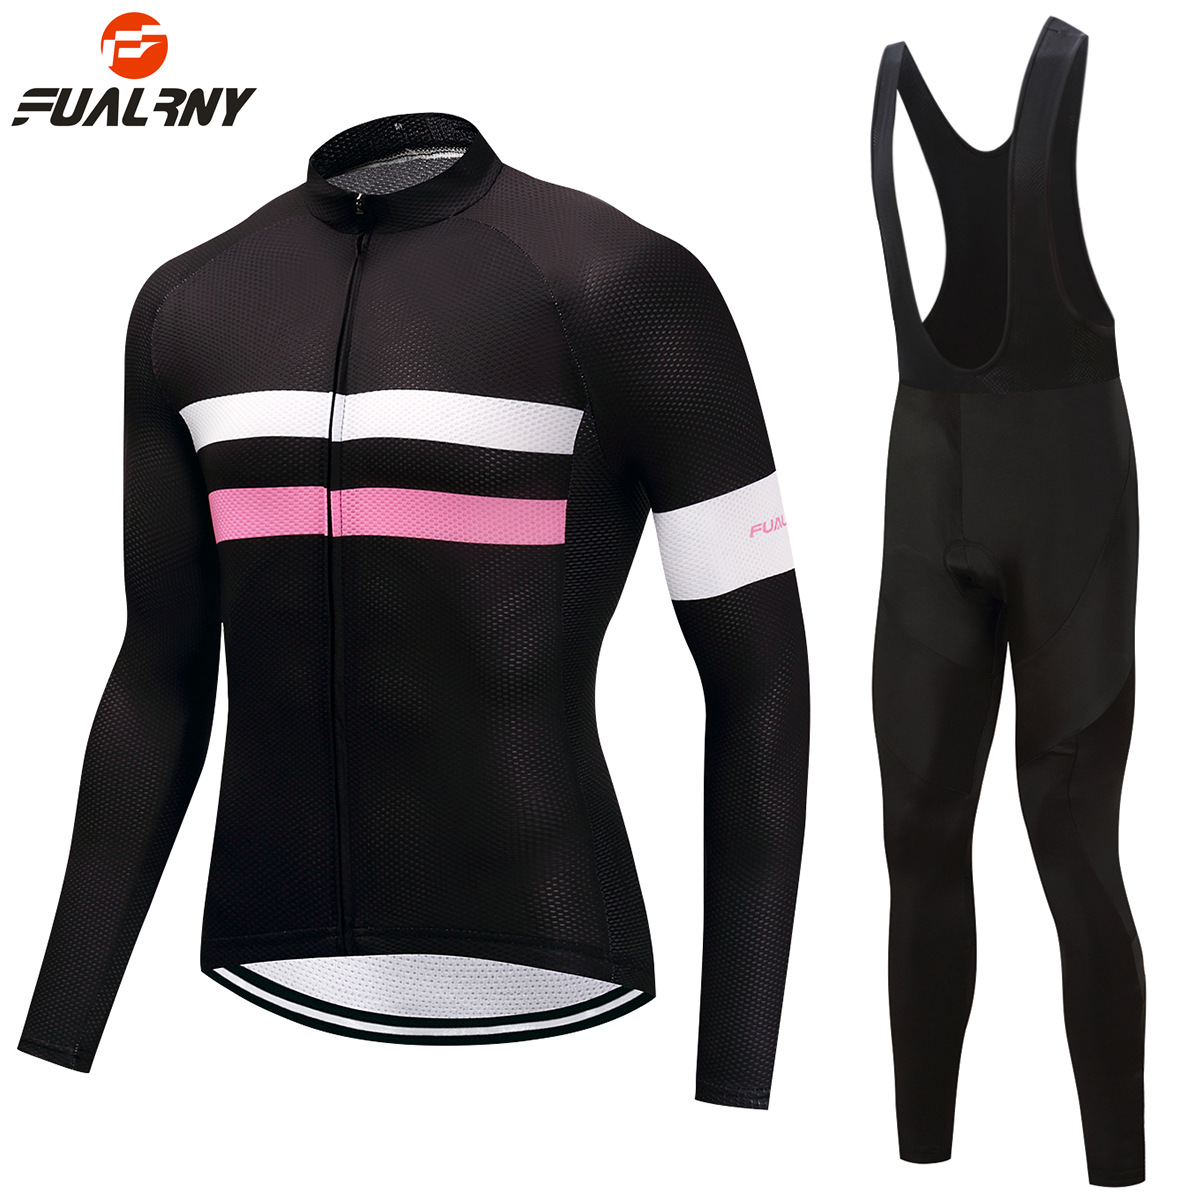 FUALRNY 2018 Pro Men Women Long Sleeve Cycling Clothing Black Mtb Bike Cycling Jersey Bib Pants Set Ropa Ciclismo Invierno Mujer teleyi black red ropa ciclismo maillot trouser mtb bike jersey bib pants set men cycling clothing suit riding long sleeve jacket